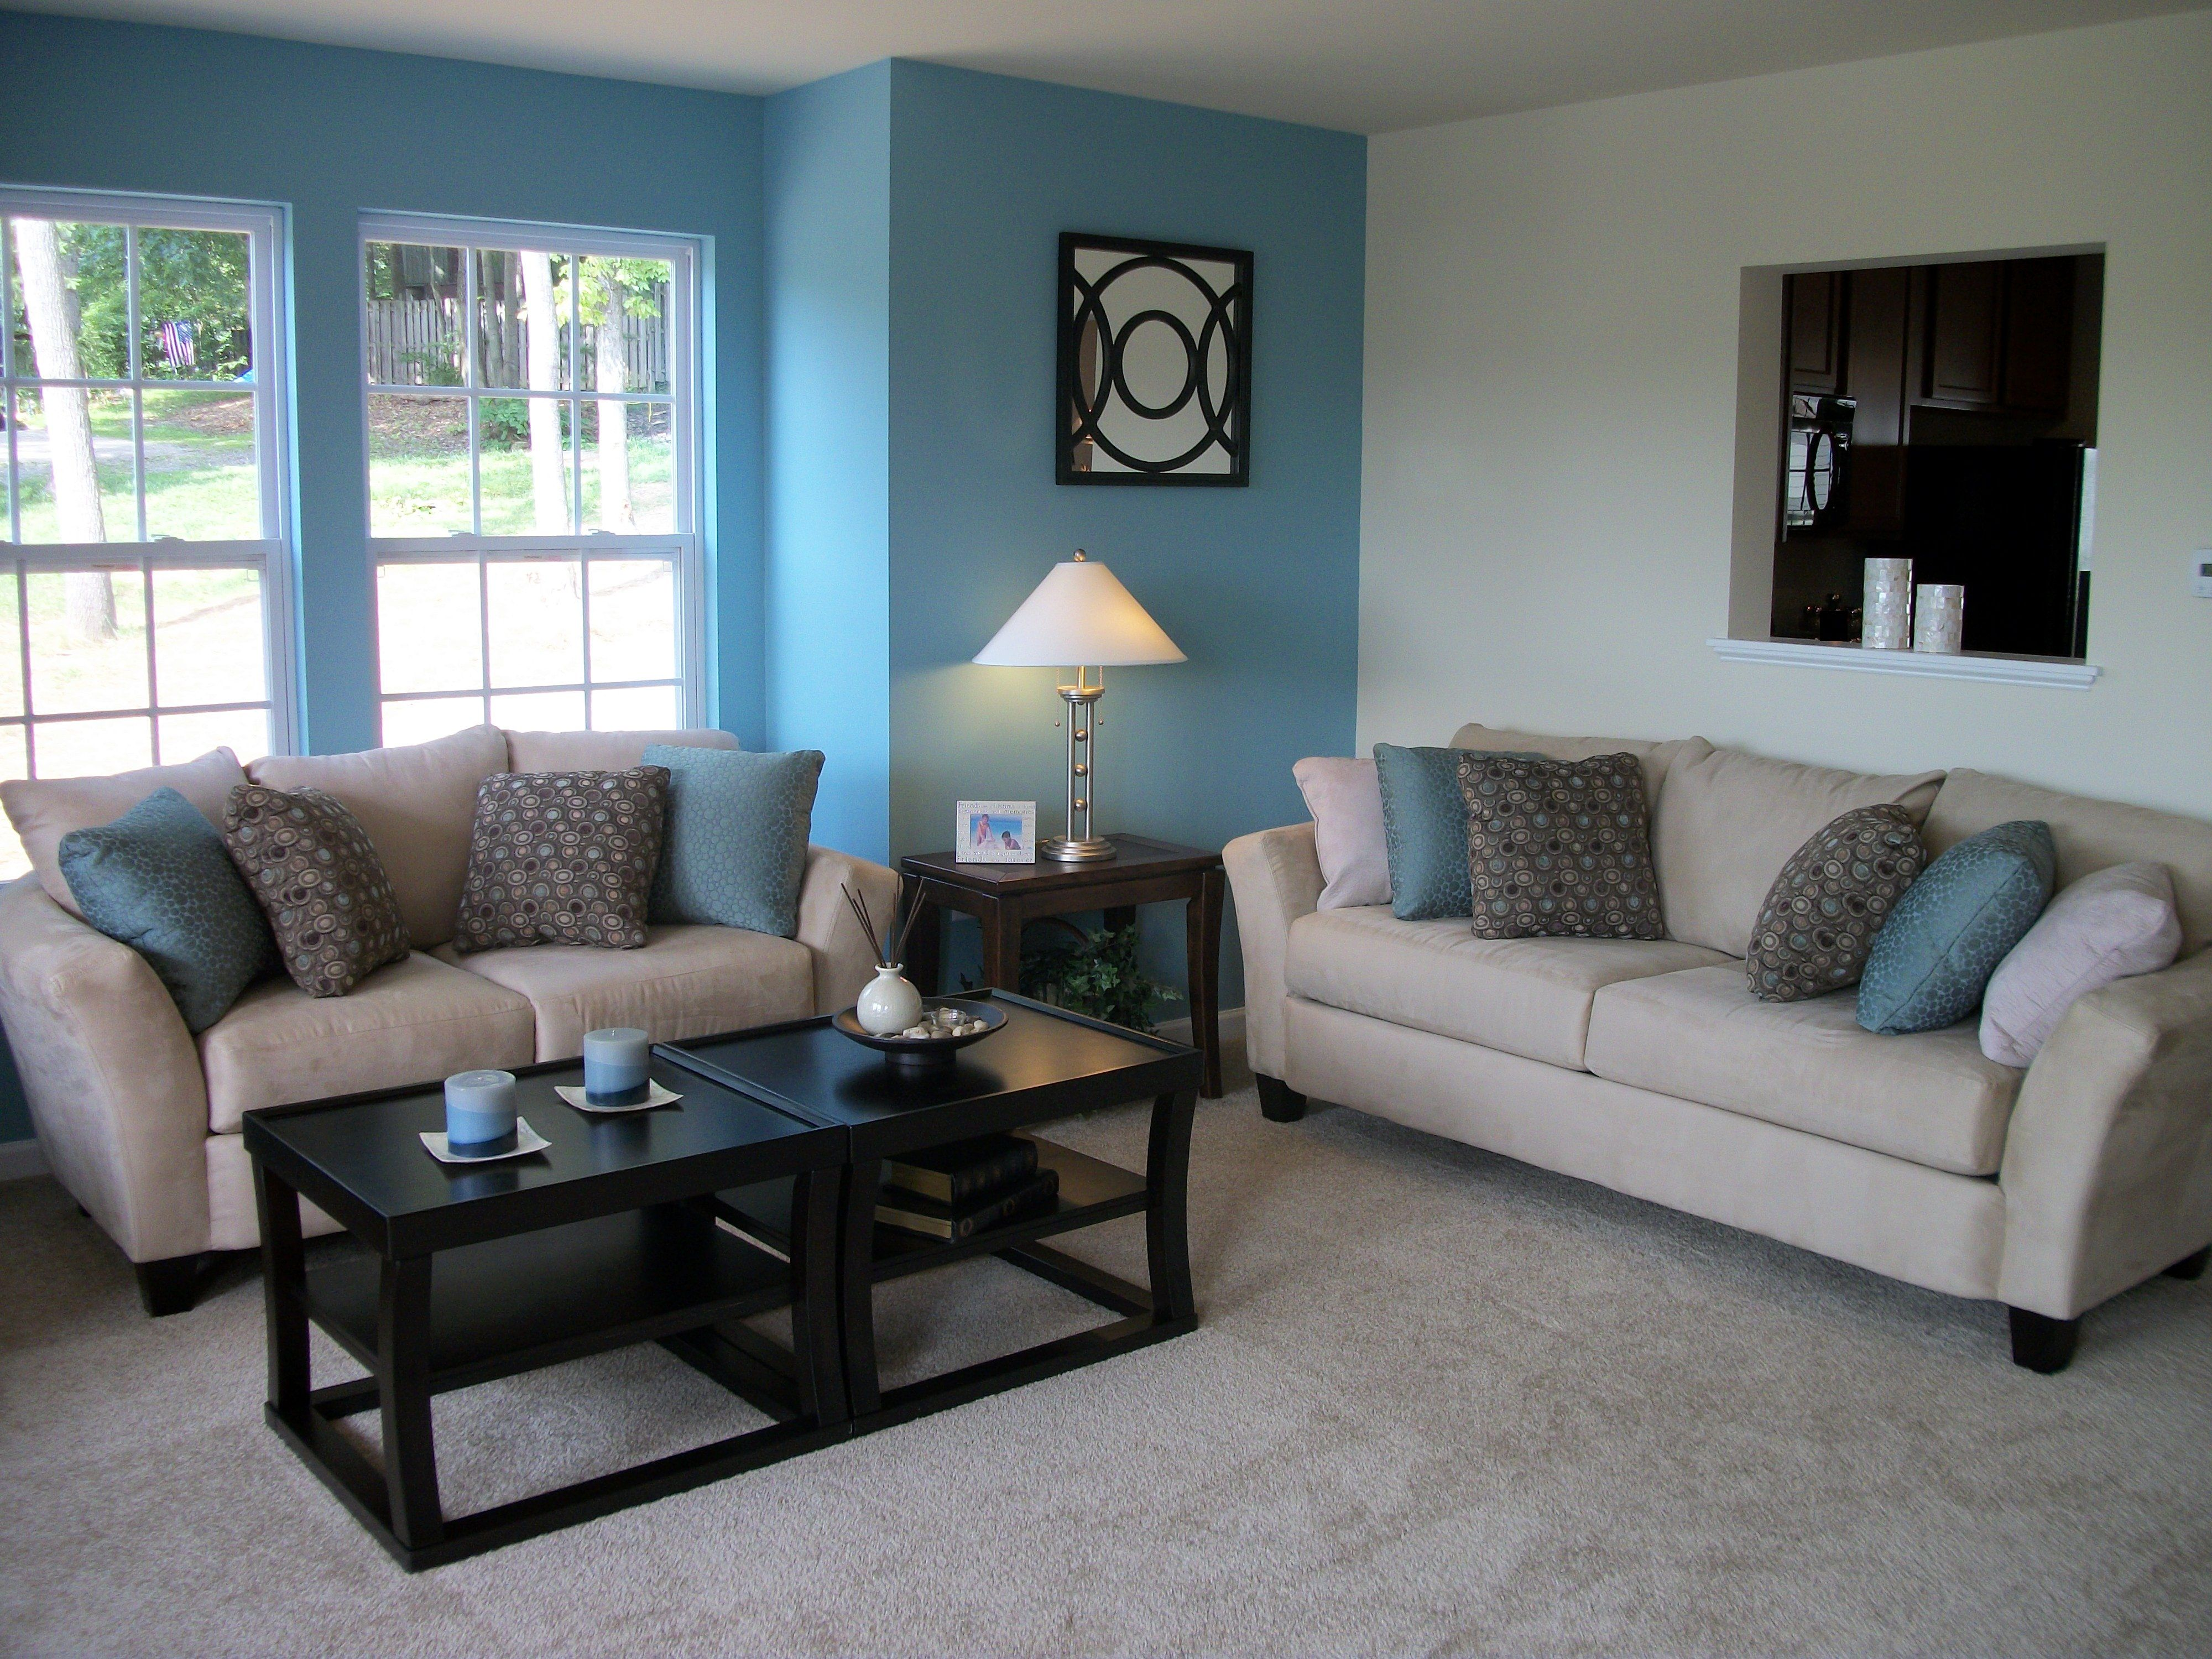 This Bright Blue Accent Wall Is Amazing Imperial Oaks In Morgantown Wv Home Home Decor Blue Accent Walls